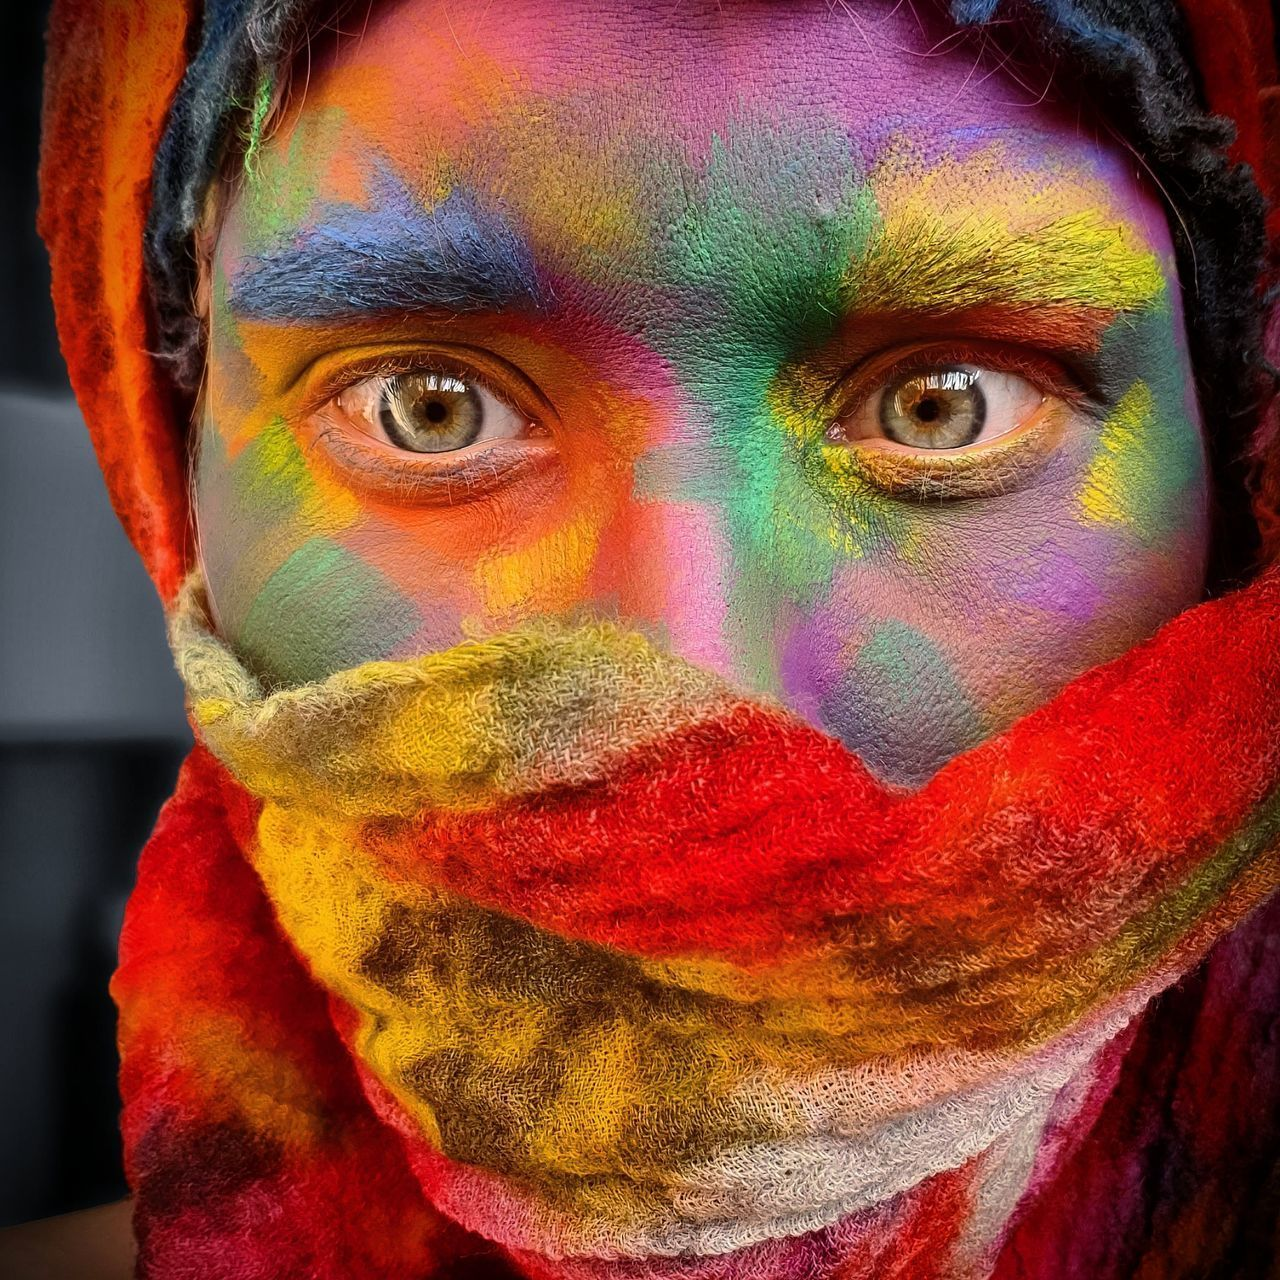 CLOSE-UP PORTRAIT OF A MAN WITH MULTI COLORED BACKGROUND